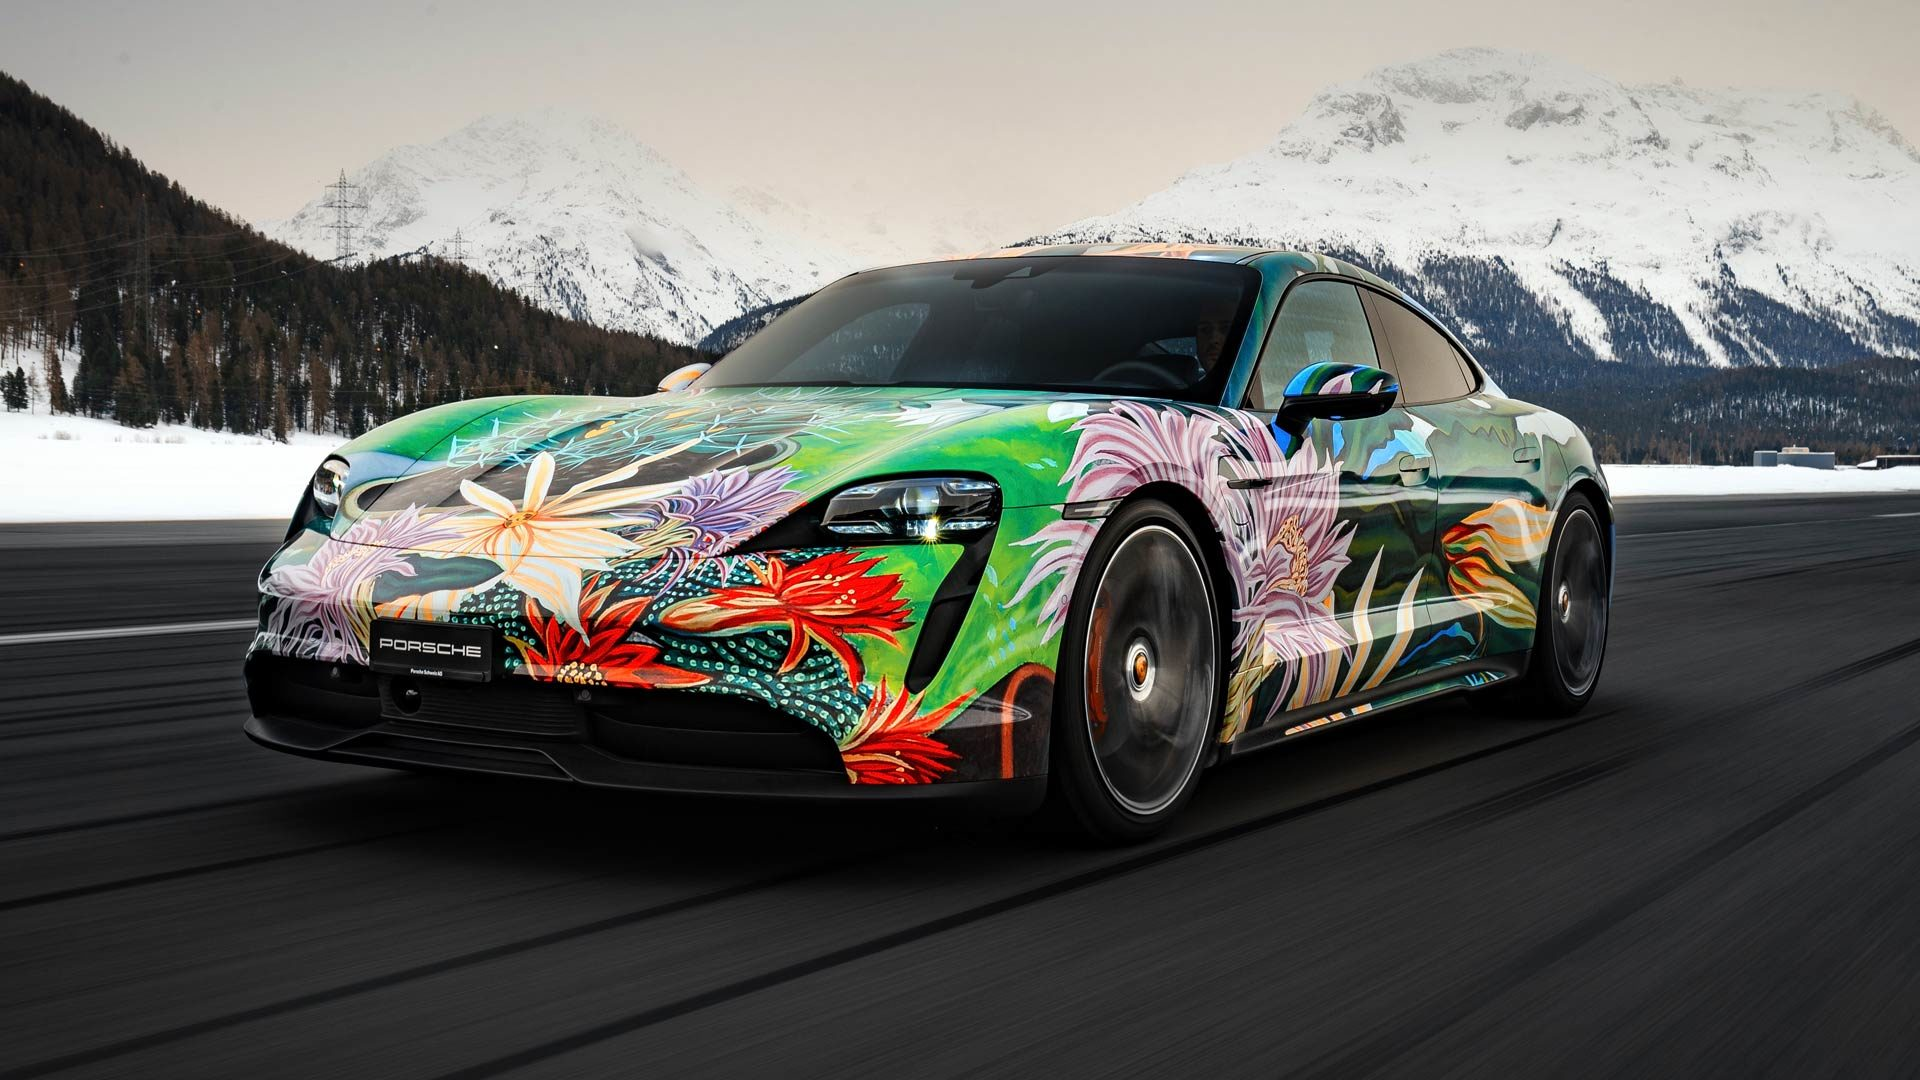 Porsche to auction electric Taycan art car for charity